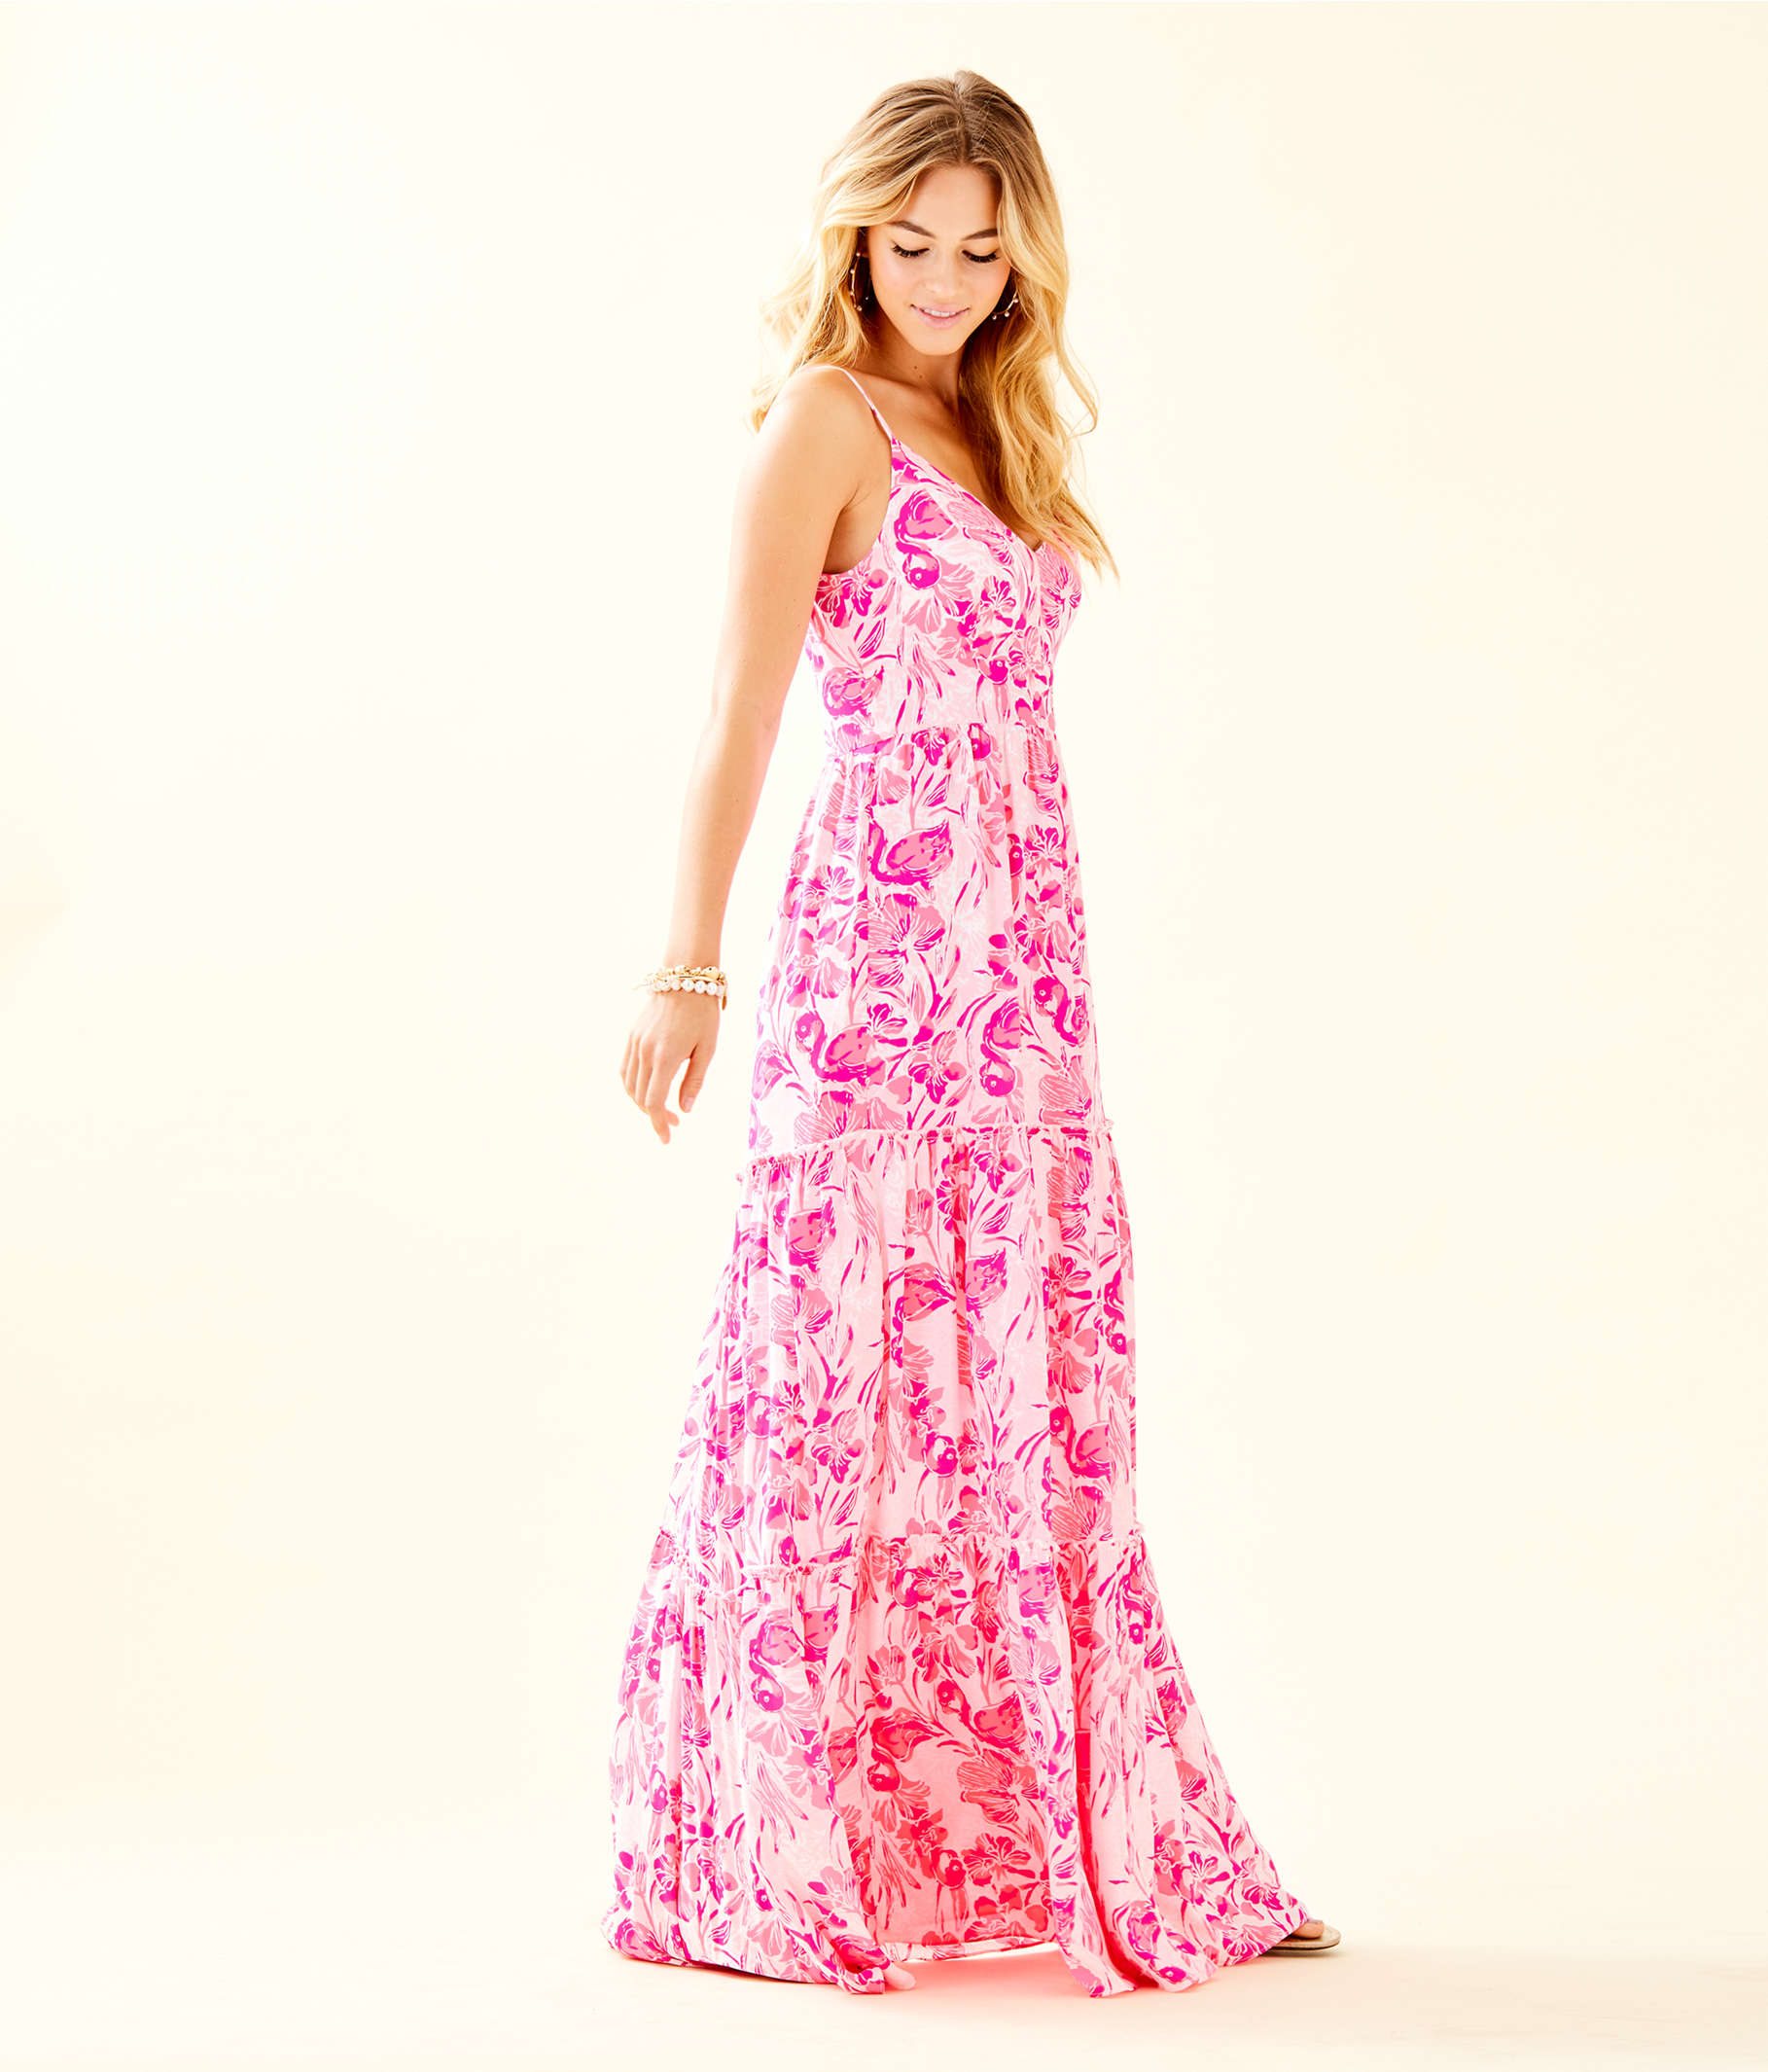 7562565e285c5a Melody Maxi Dress, Coral Reef Tint Flamingle, large Zoom